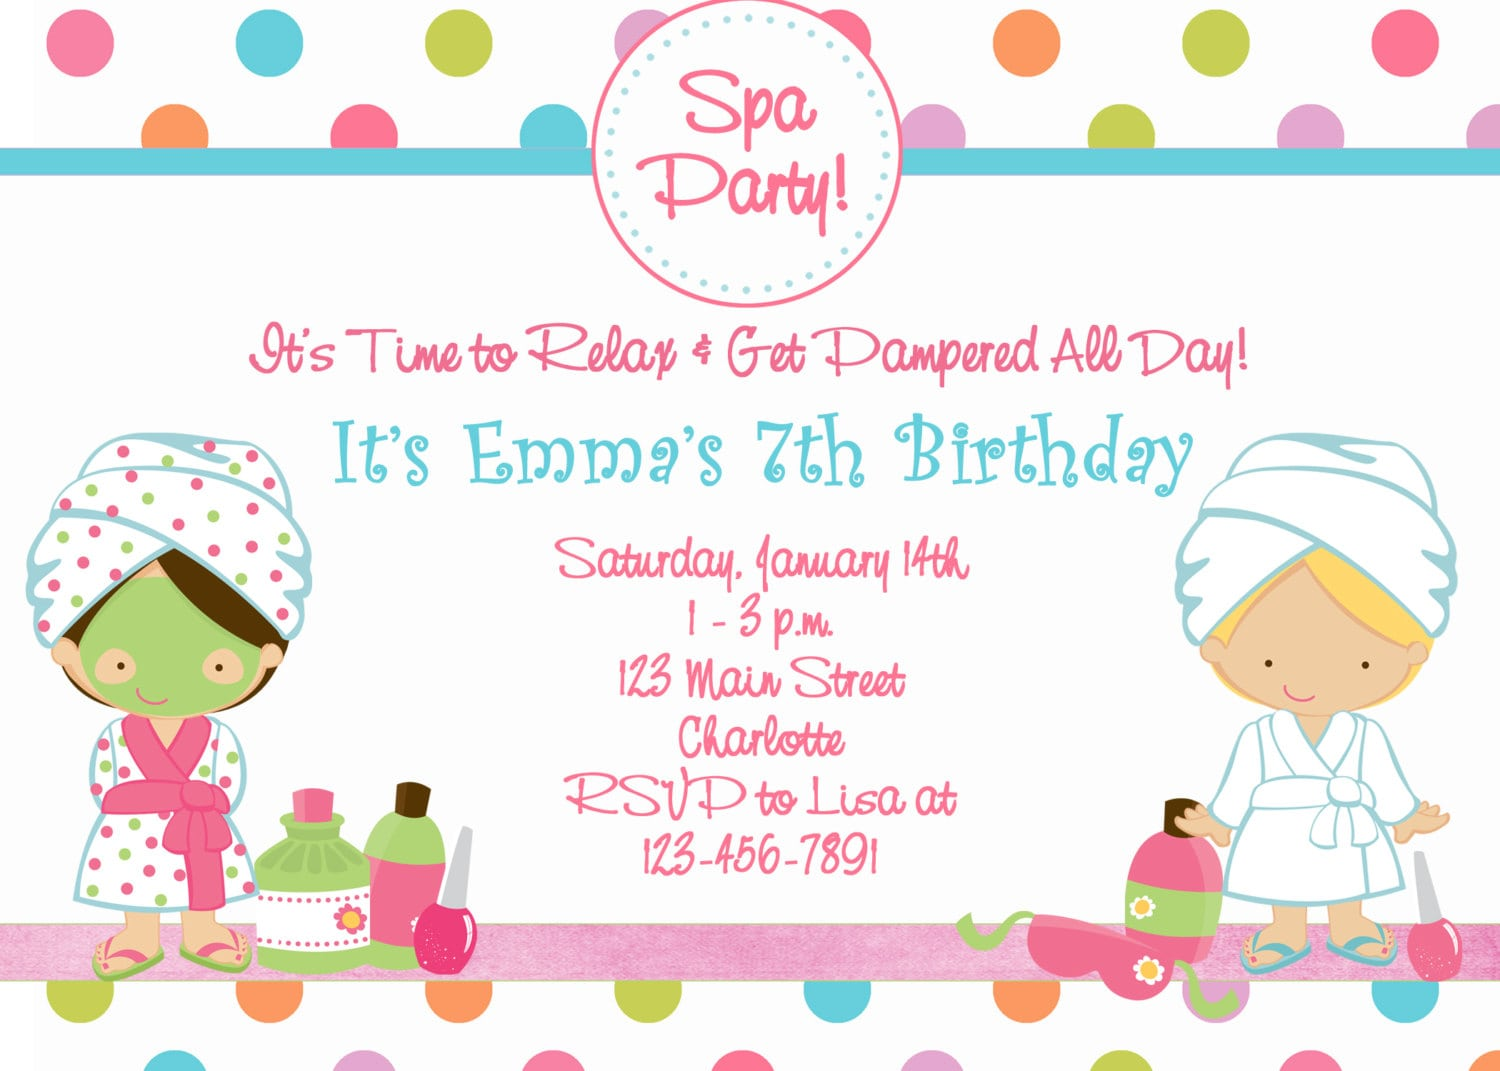 17 Best Ideas About Spa Party Invitations On Pinterest